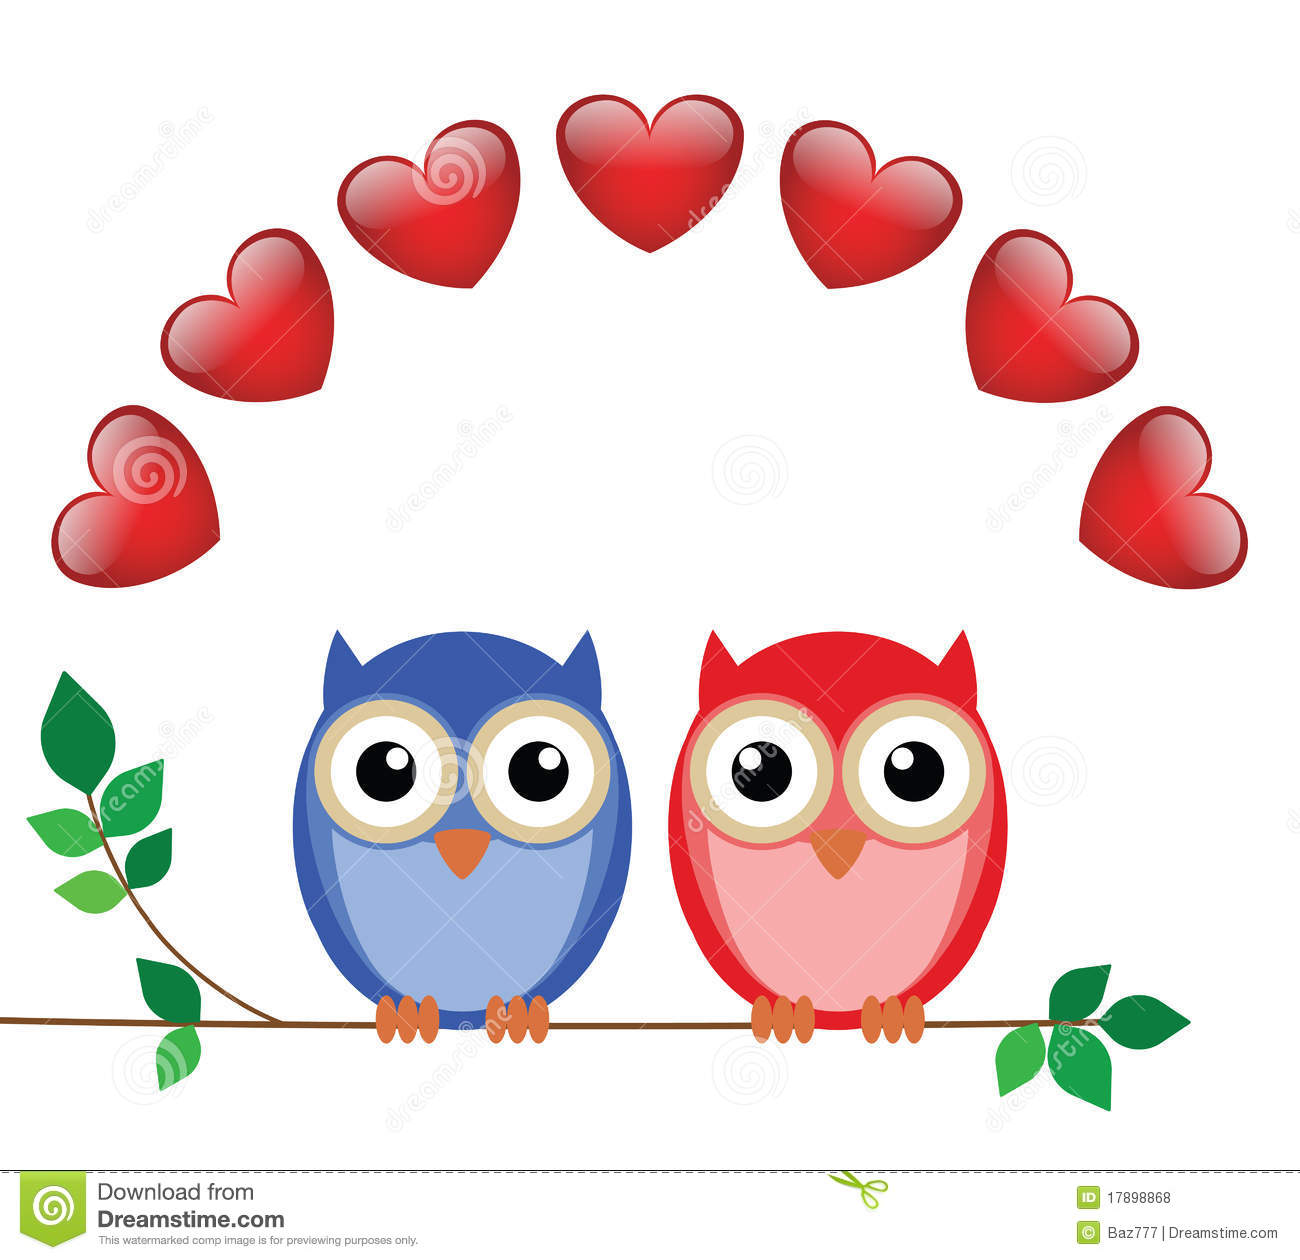 Cute valentine owl clipart transparent library Valentine Owl Clipart - Clipart Kid transparent library